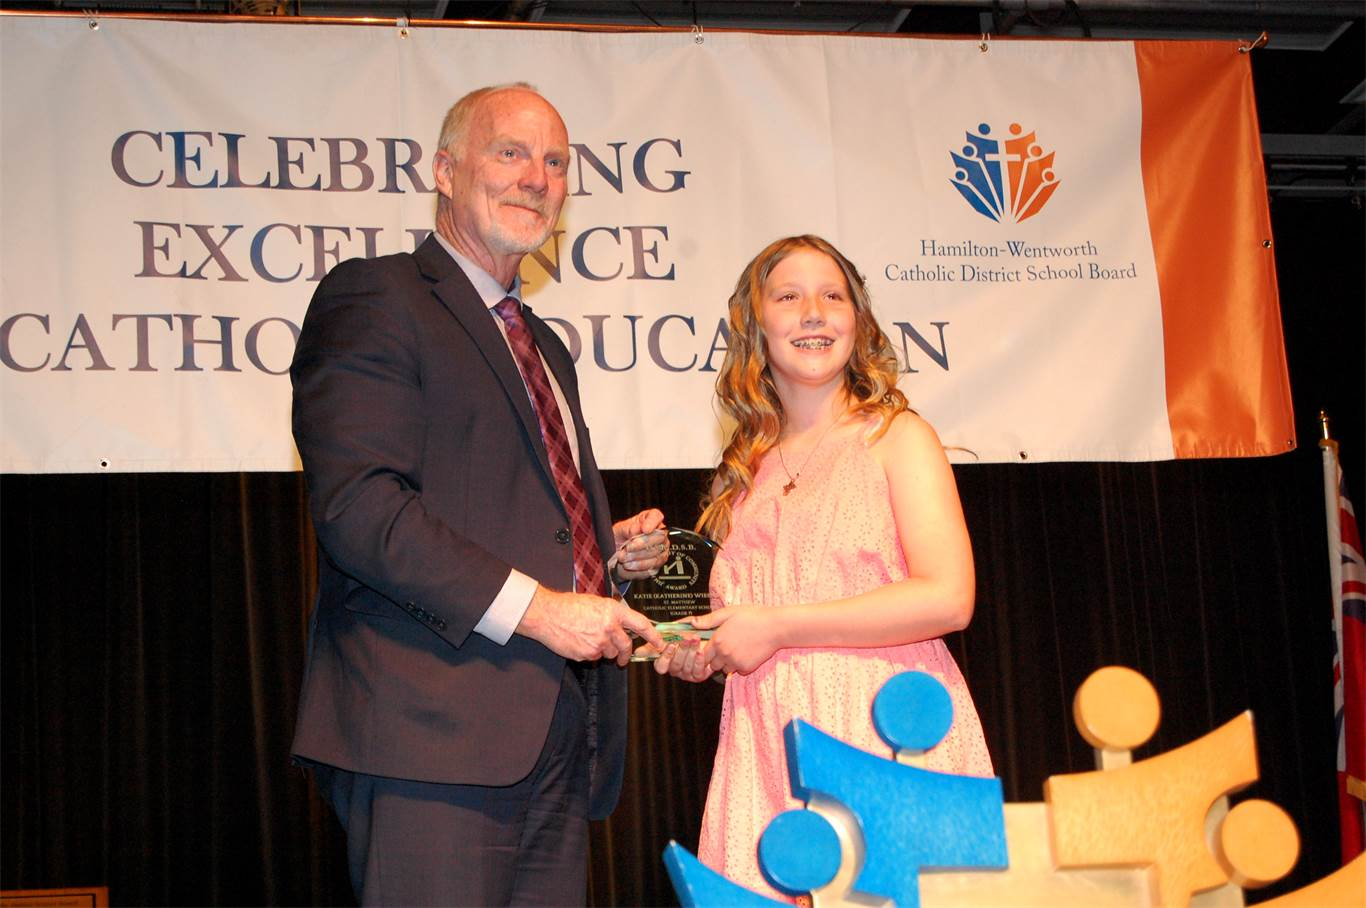 David Hansen presents Katherine Wiesner with the James Hansen Spirit of Community Award. The award, in recognition of former Superintendent Jim Hansen's legacy of 'Each Belongs,' is presented annually to one elementary and one secondary student who, by their presence and actions, serve as builders of community.